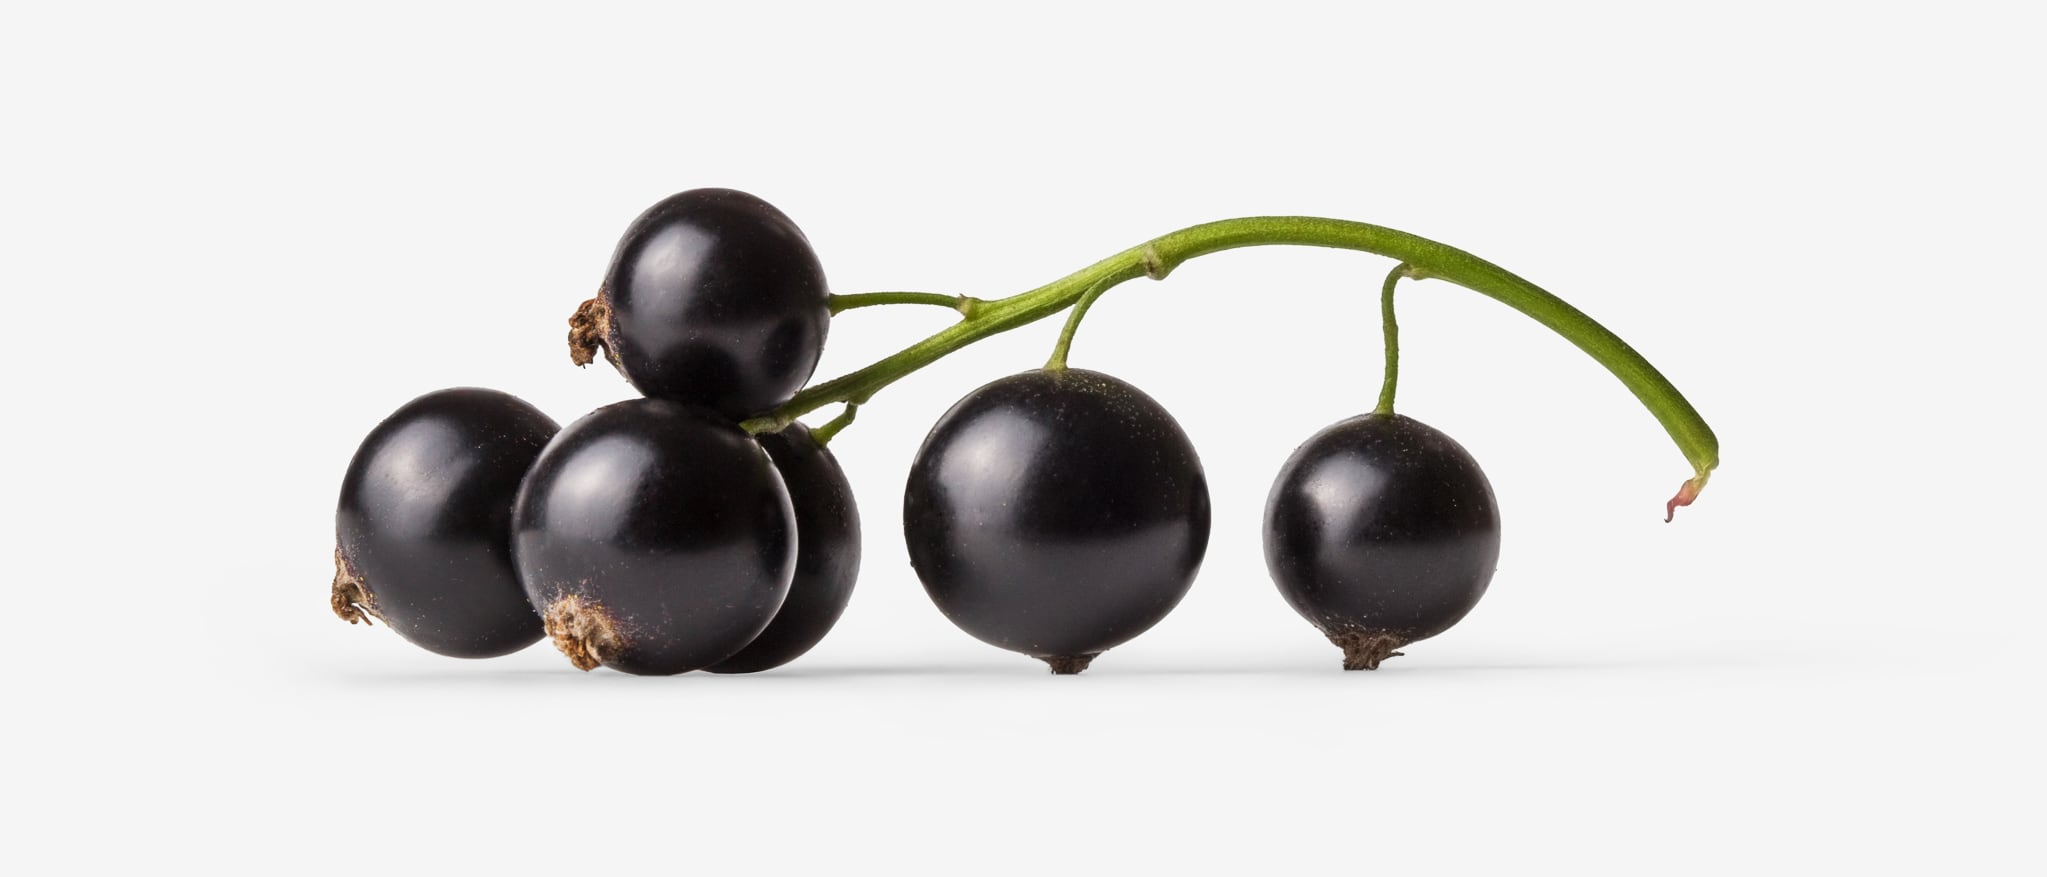 Currant PSD image with transparent background